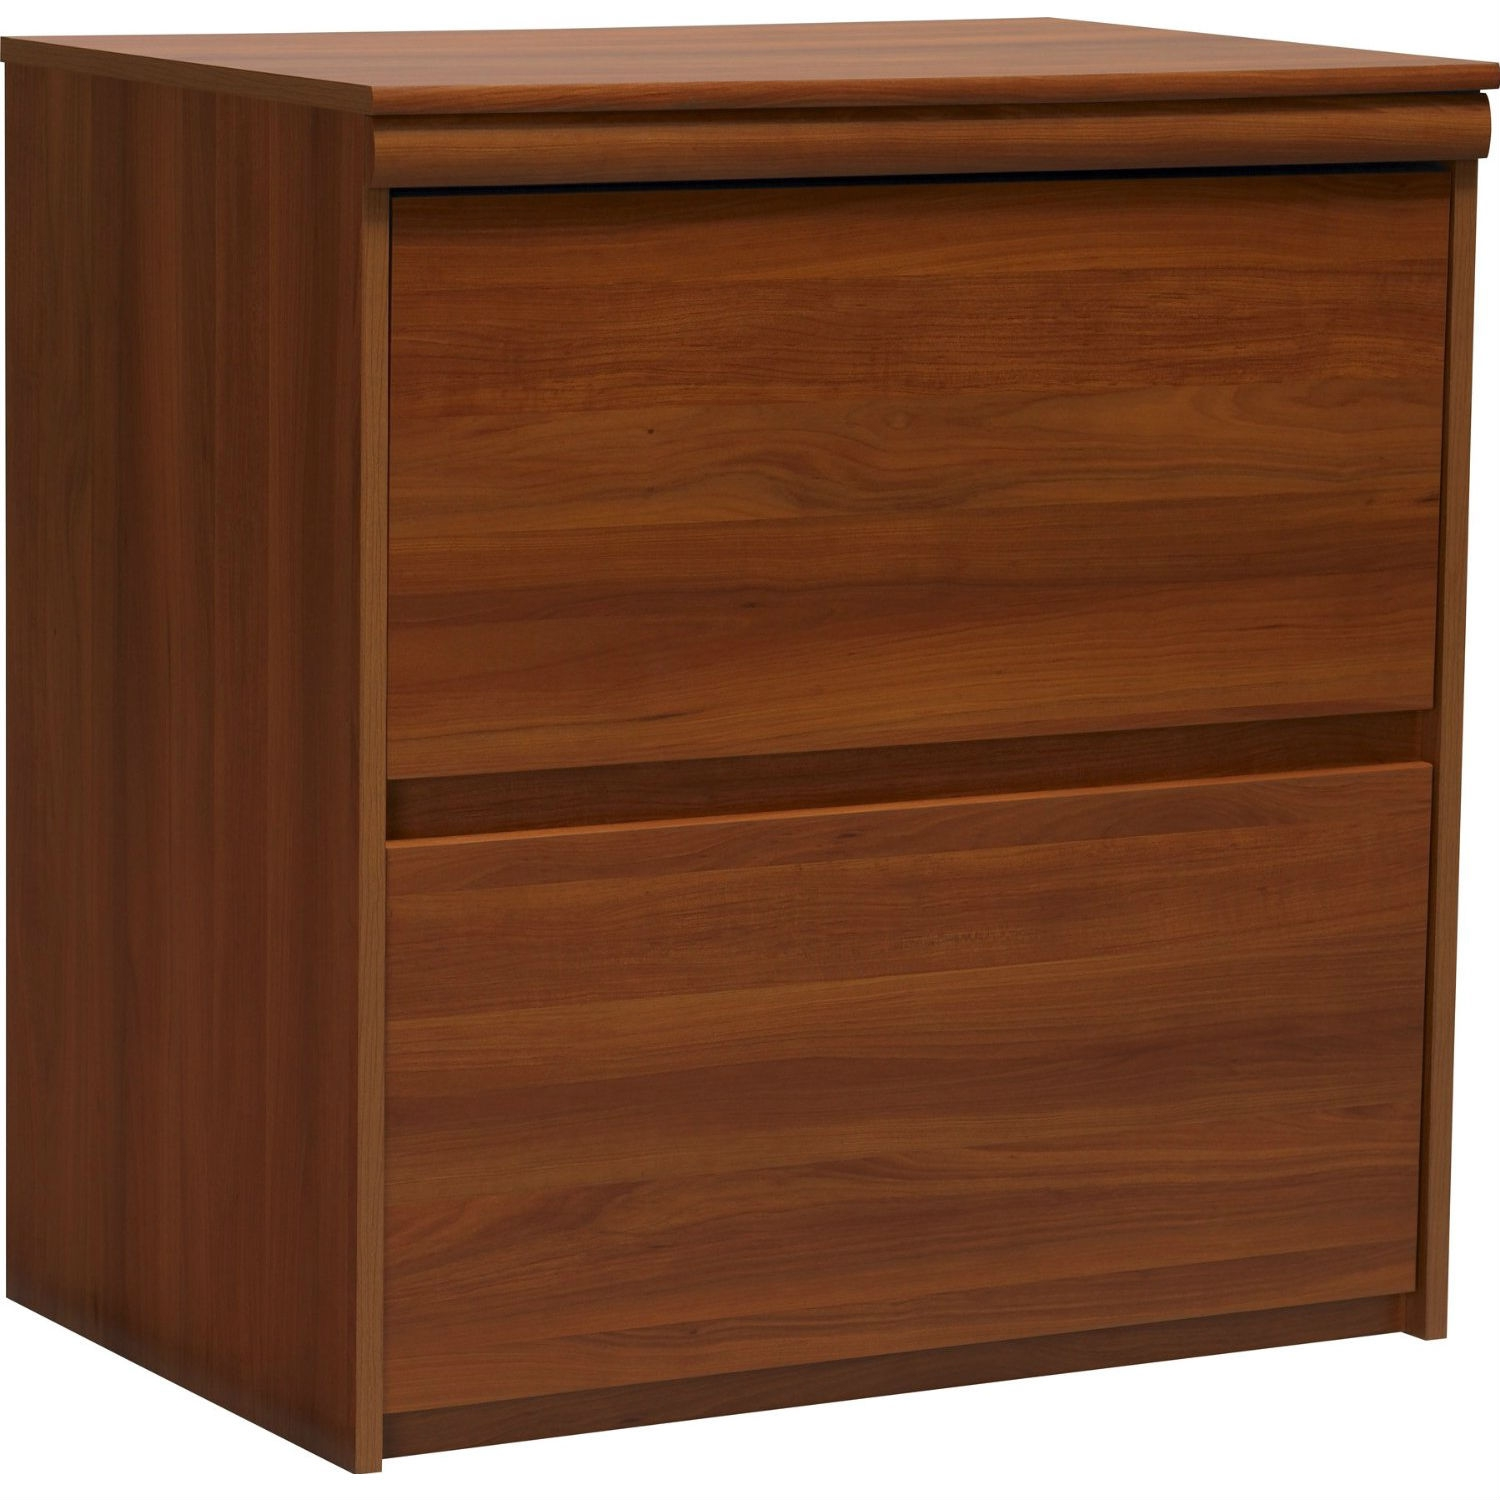 Need a place for all your files, receipts, bills and other documents? Keep them neatly tucked away inside this attractive file cabinet. This 2-Drawer Lateral File Cabinet in Contemporary Plum Finish features two large drawers, offering ample room for files and folders. The drawers accommodate both letter and legal-sized hanging files. The large surface of the file cabinet also makes a great spot to place a printer, additional supplies, picture frames or other decorative items. Dressed in a warm Expert Plum finish, the 2-Drawer File Cabinet complements virtually any décor at home or in the office. Place it in any space to keep your important files organized and concealed. Easy to assemble with household tools. Made in USA.